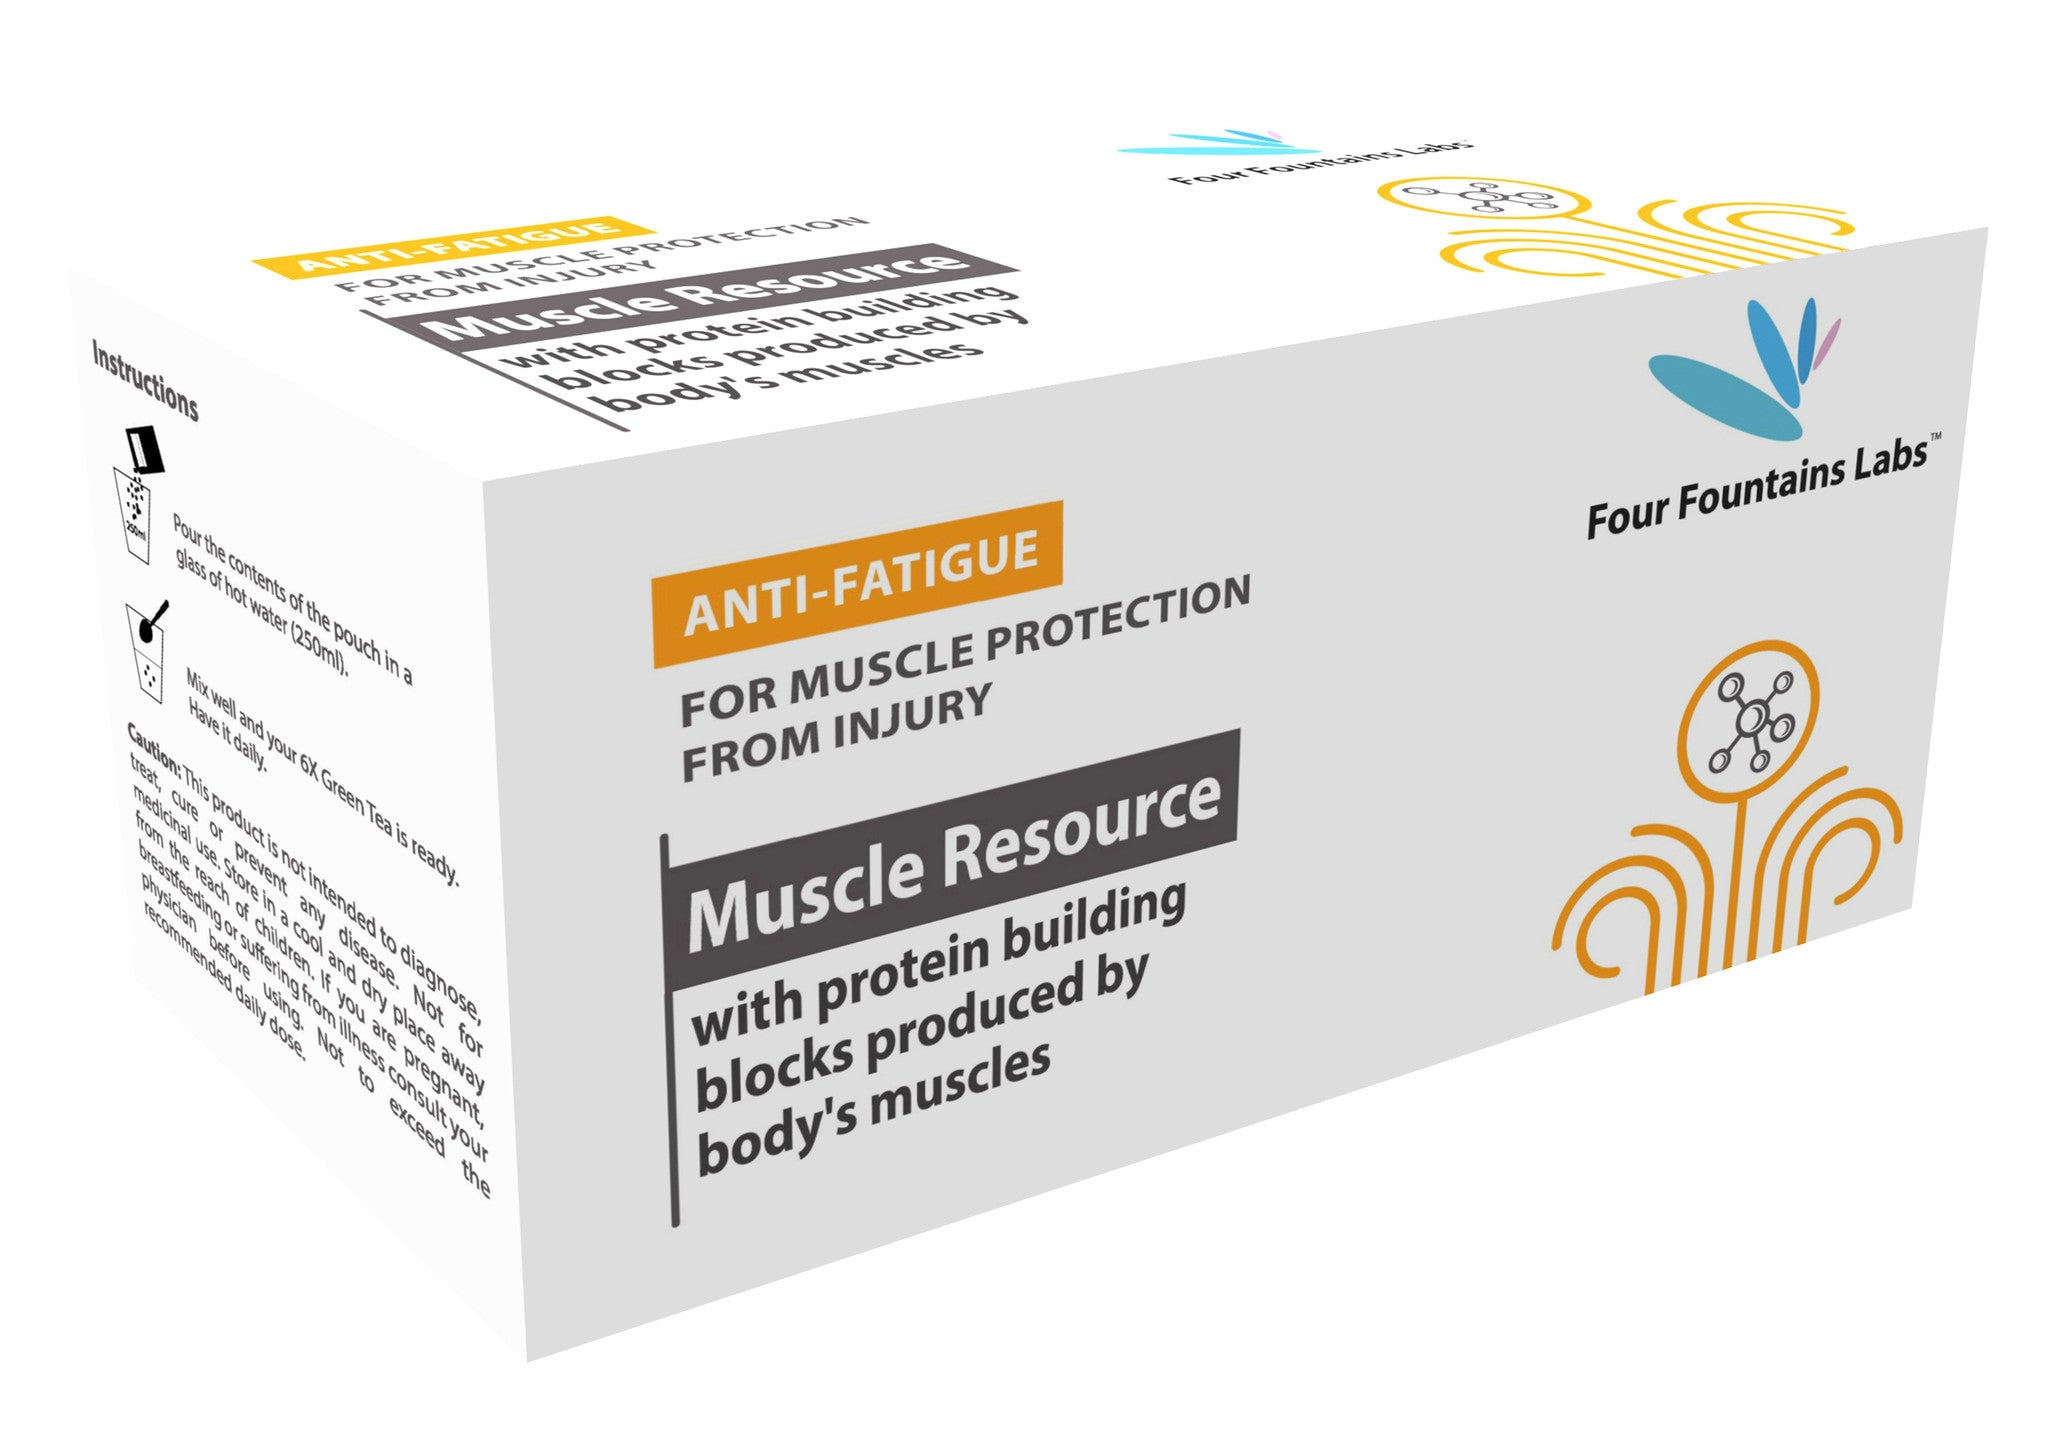 Muscle Resource with Glutamine - for reducing Fatigue by replenishing Protein to the Muscles (1 Month Supply)